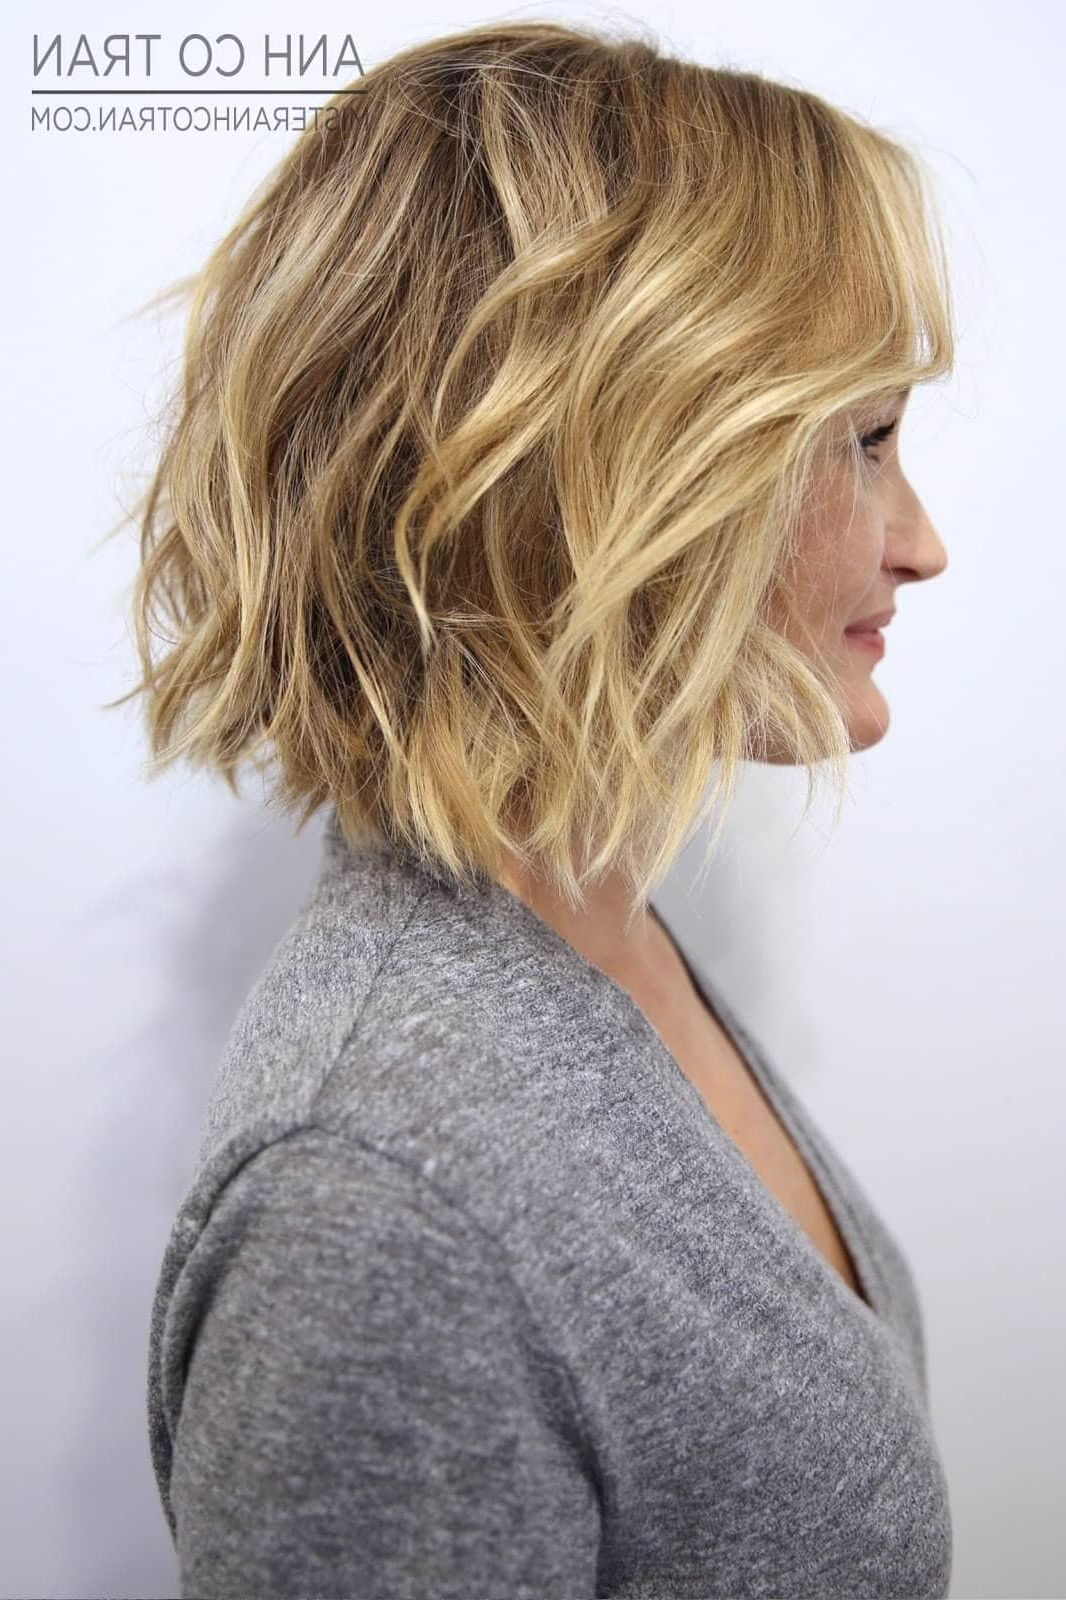 50 Ways To Wear Short Hair With Bangs For A Fresh New Look With Short Haircuts With Bangs And Layers (View 10 of 25)